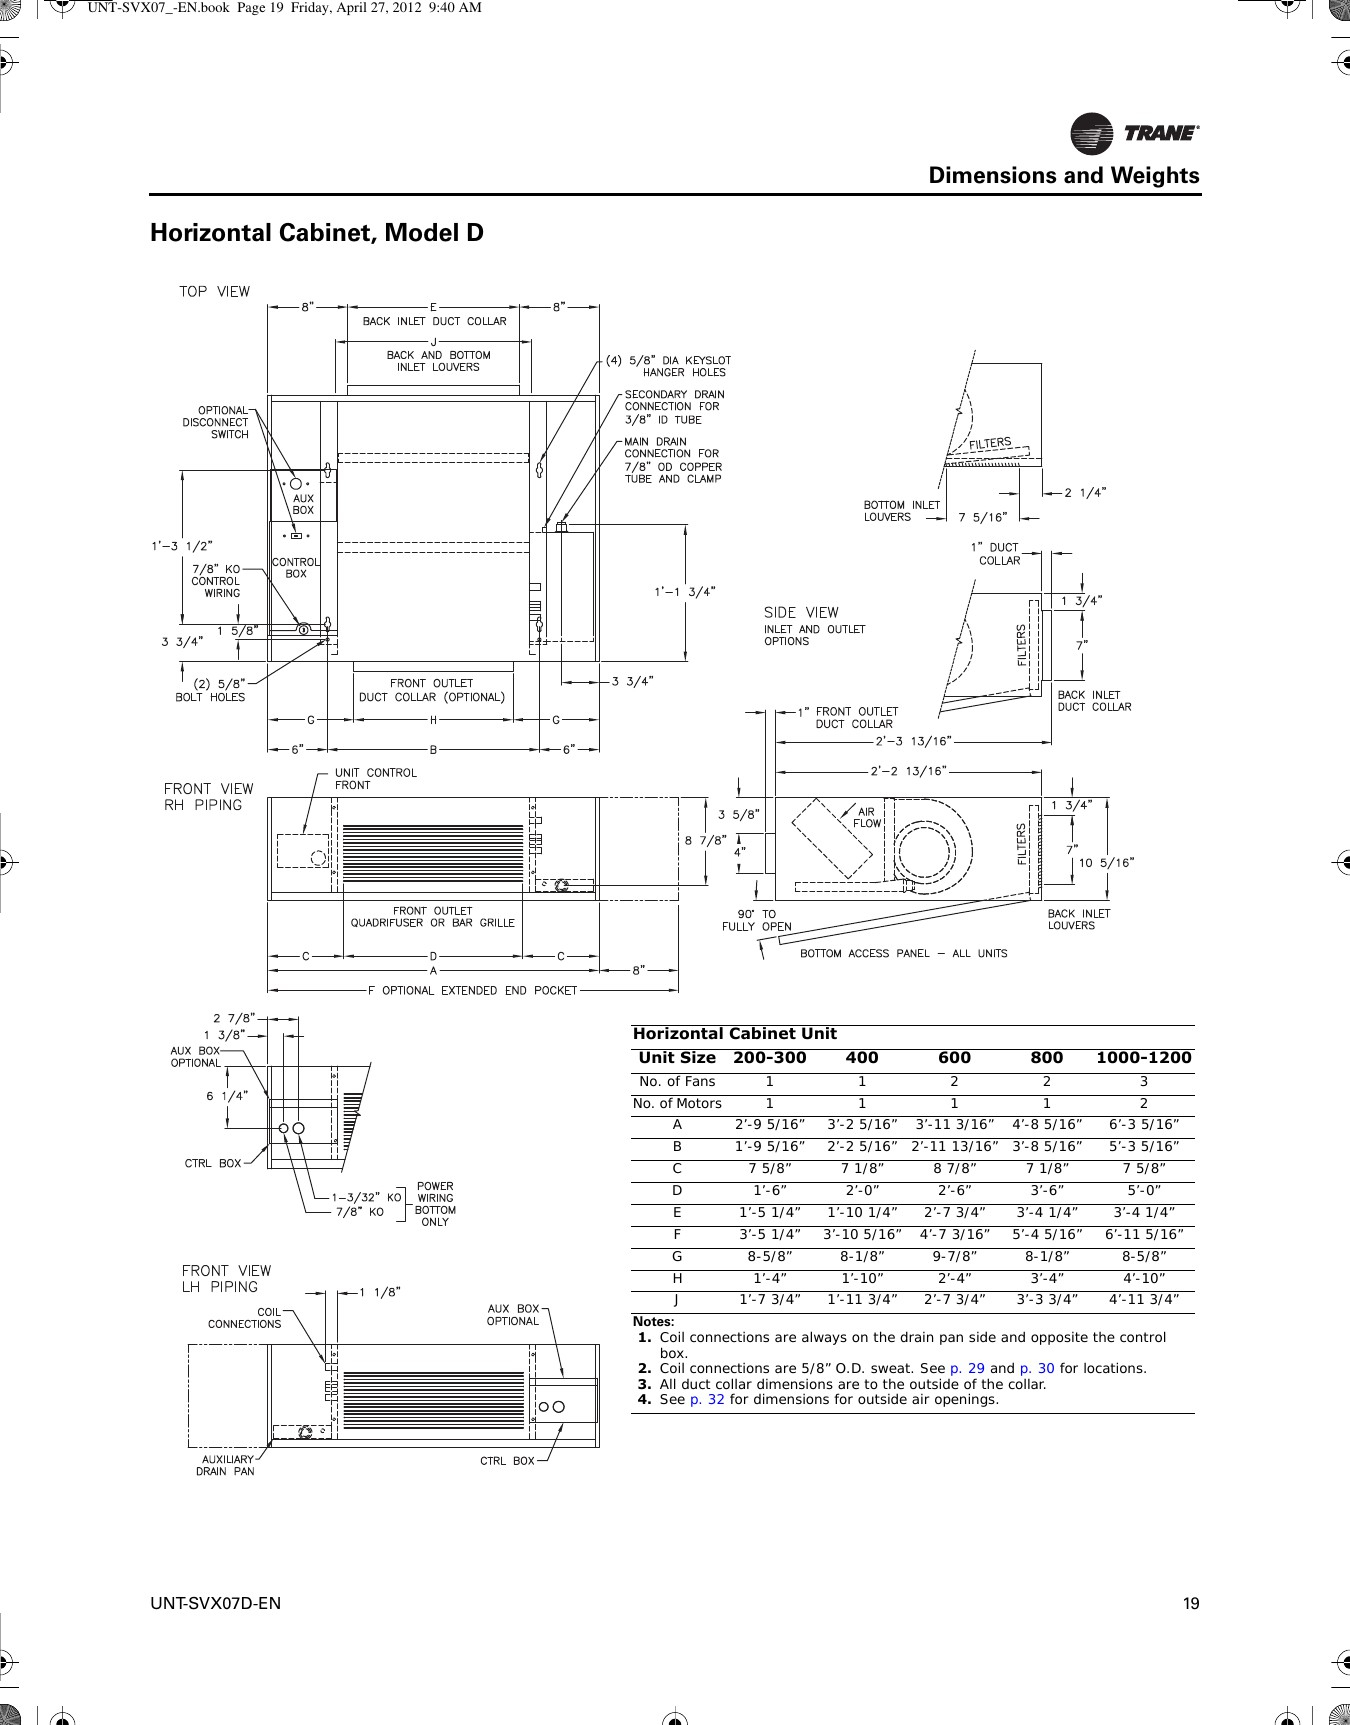 trane wsc060 wiring diagram Download-Trane Wiring Diagrams Fresh Trane Heat Pump Troubleshooting Choice Image Free 1-k